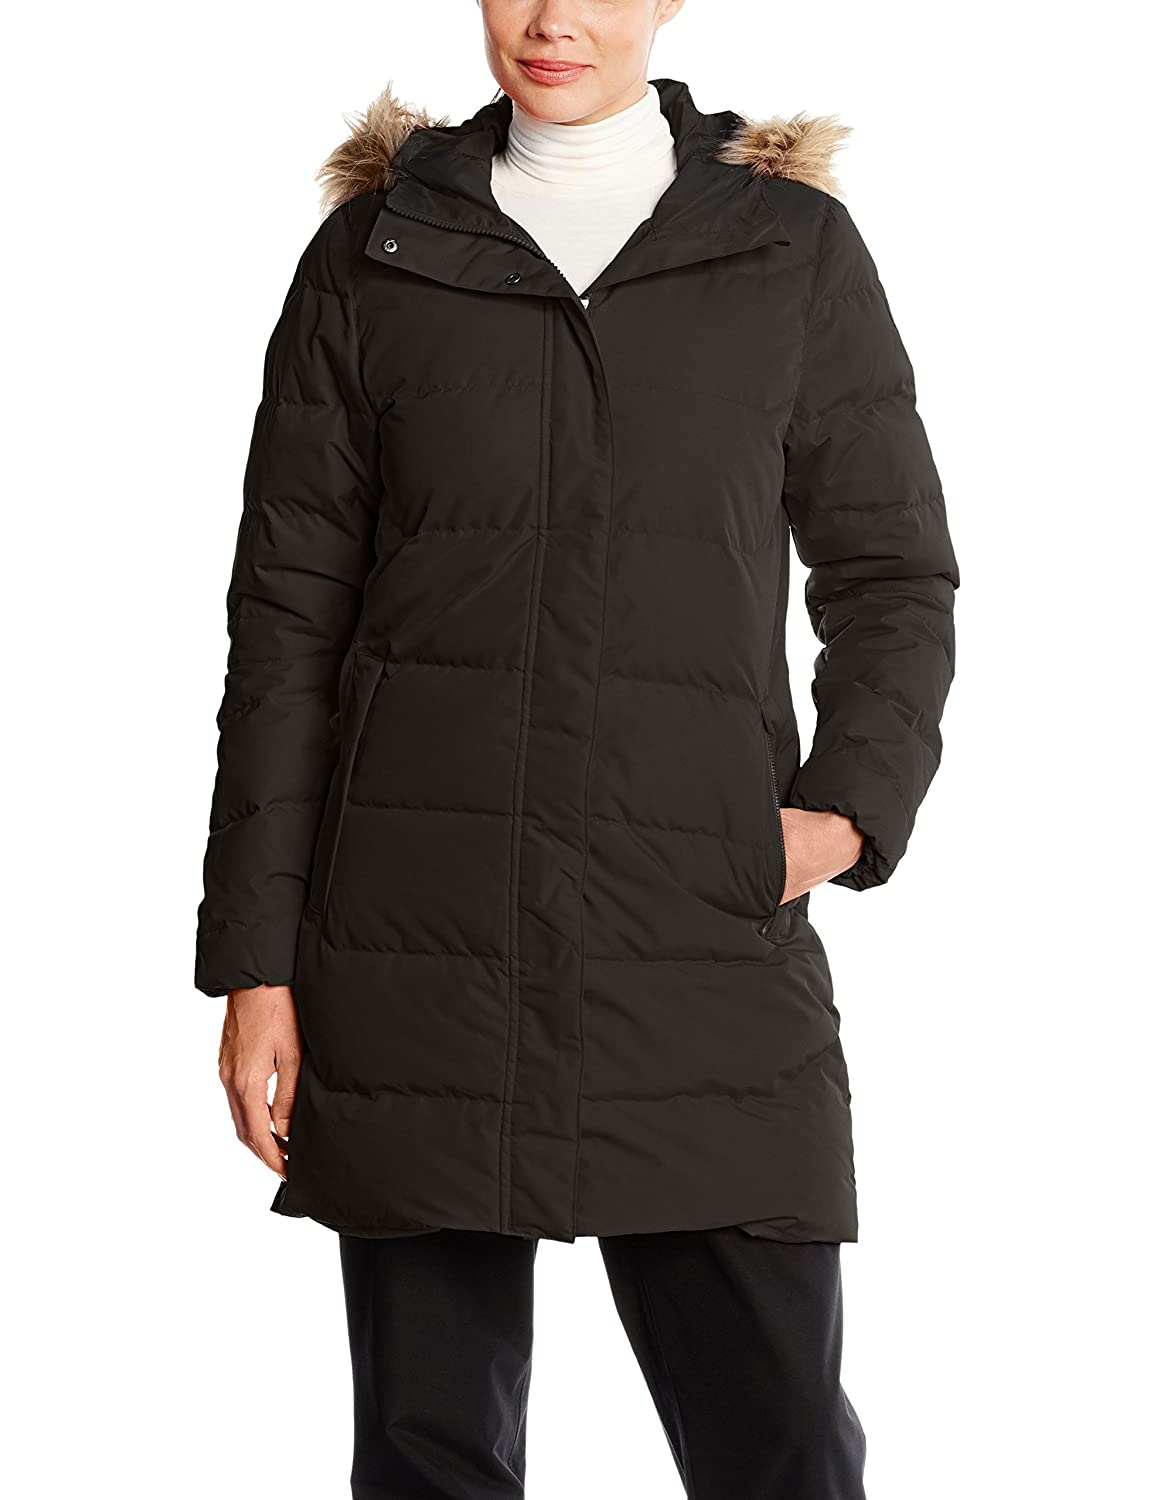 990 Black Helly Hansen Women's Aden Down Waterproof Windproof Breathable Parka Coat Jacket with Hood